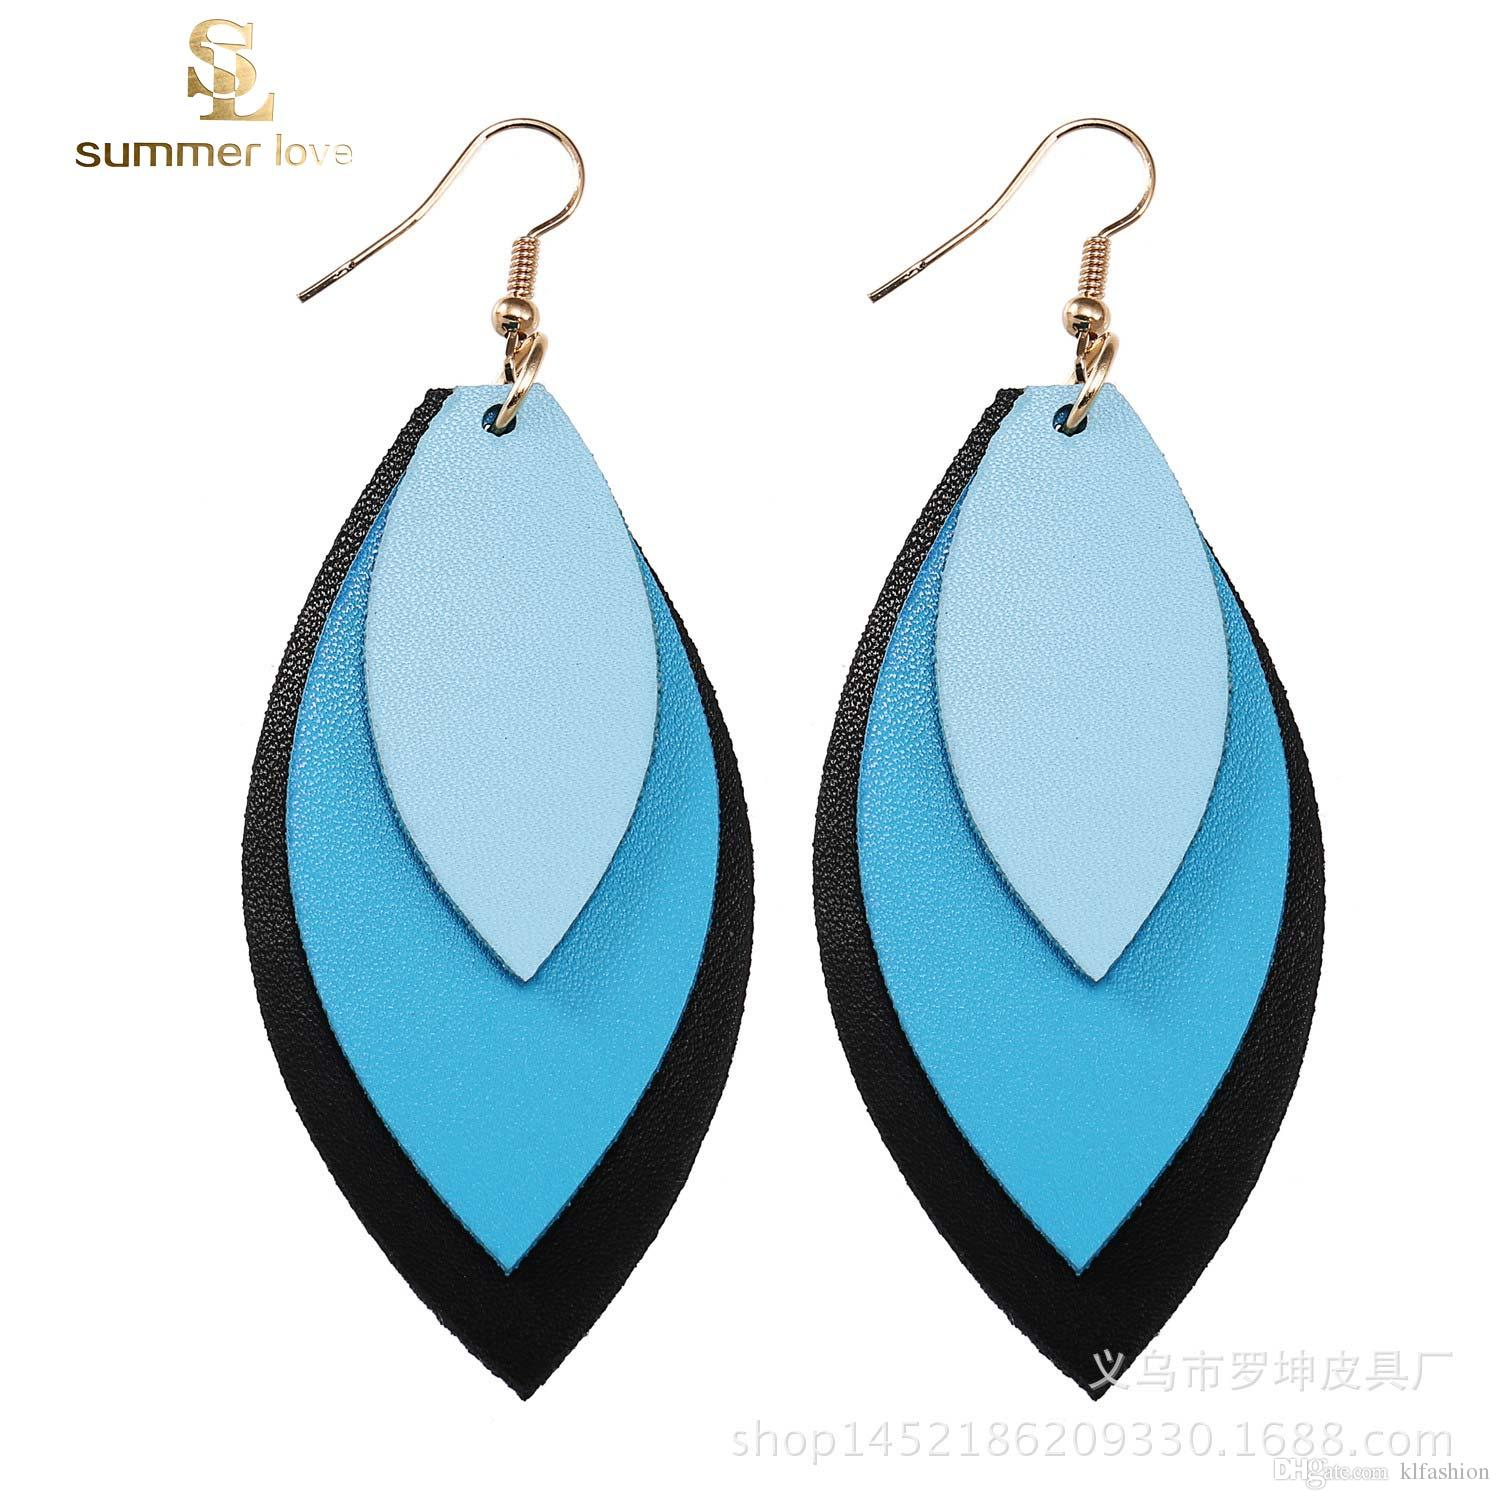 2019 Three Layer Leaf Pu Leather Dnagle Earring For Women Unique Design  Colorful Hook Drop Earrings Fahsion Jewelry Gift From Klfashion dd6de6d82eb4